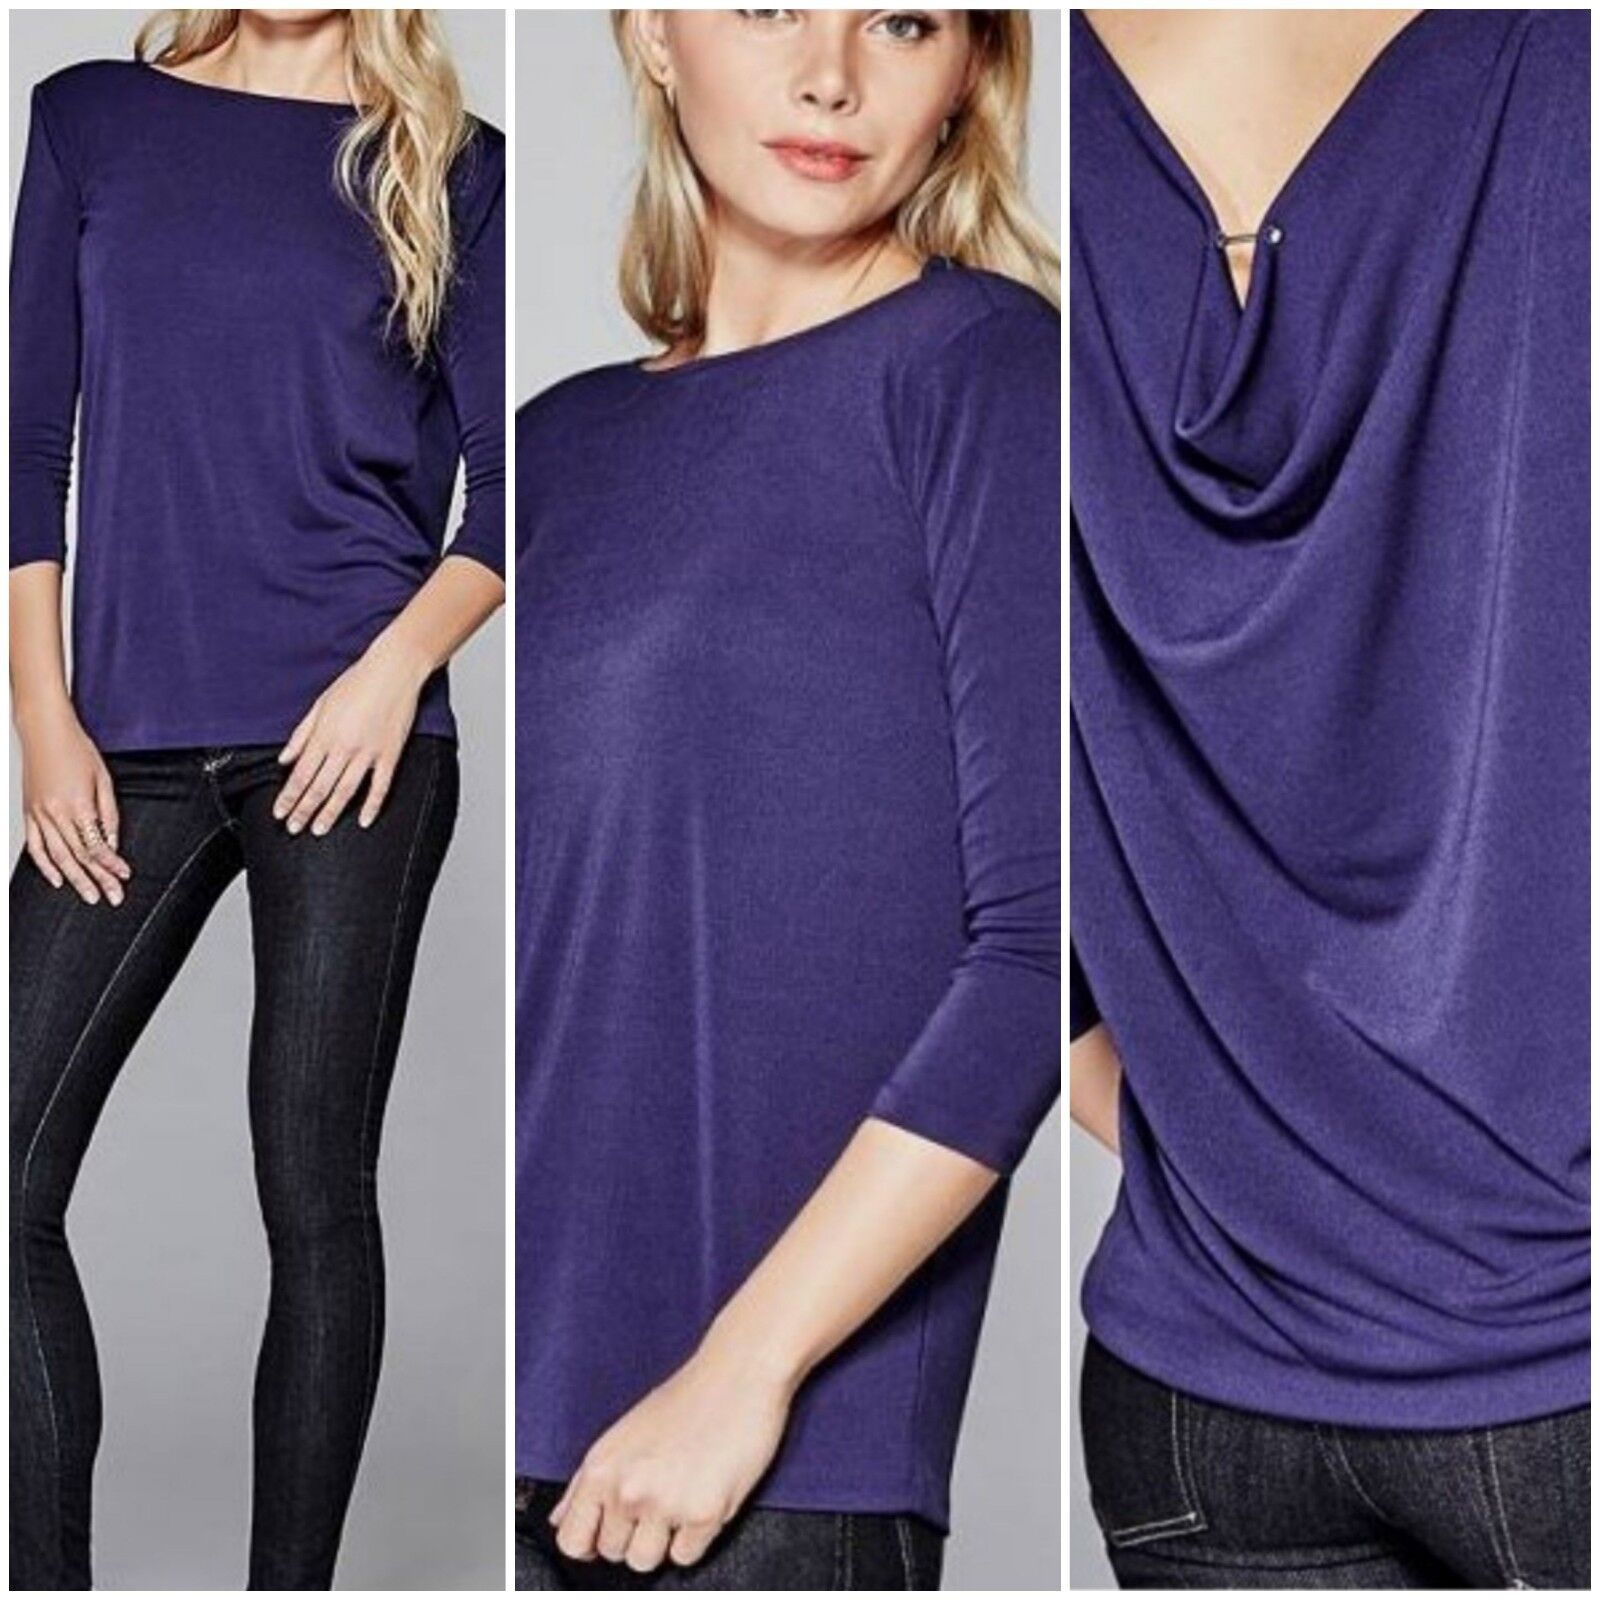 NWT Guess by Marciano Three-Quarter Sleeve Draped Top Größe S